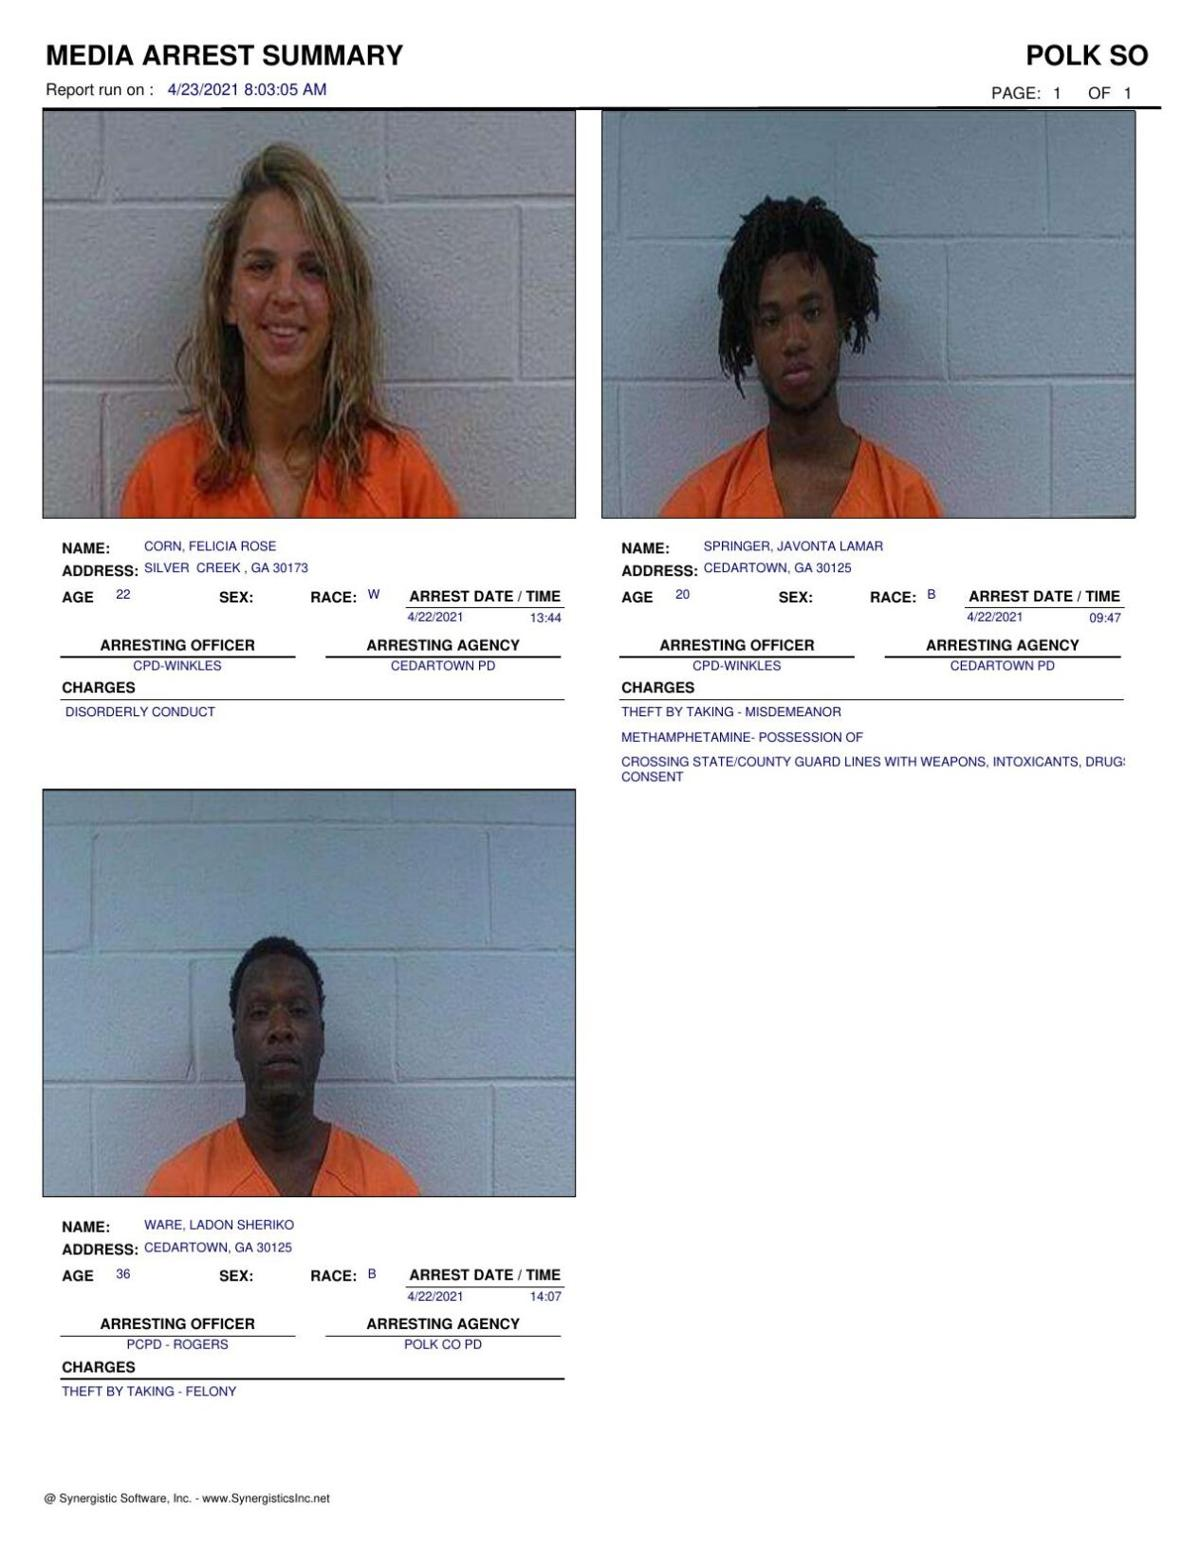 Polk County Jail Report for Friday, April 23